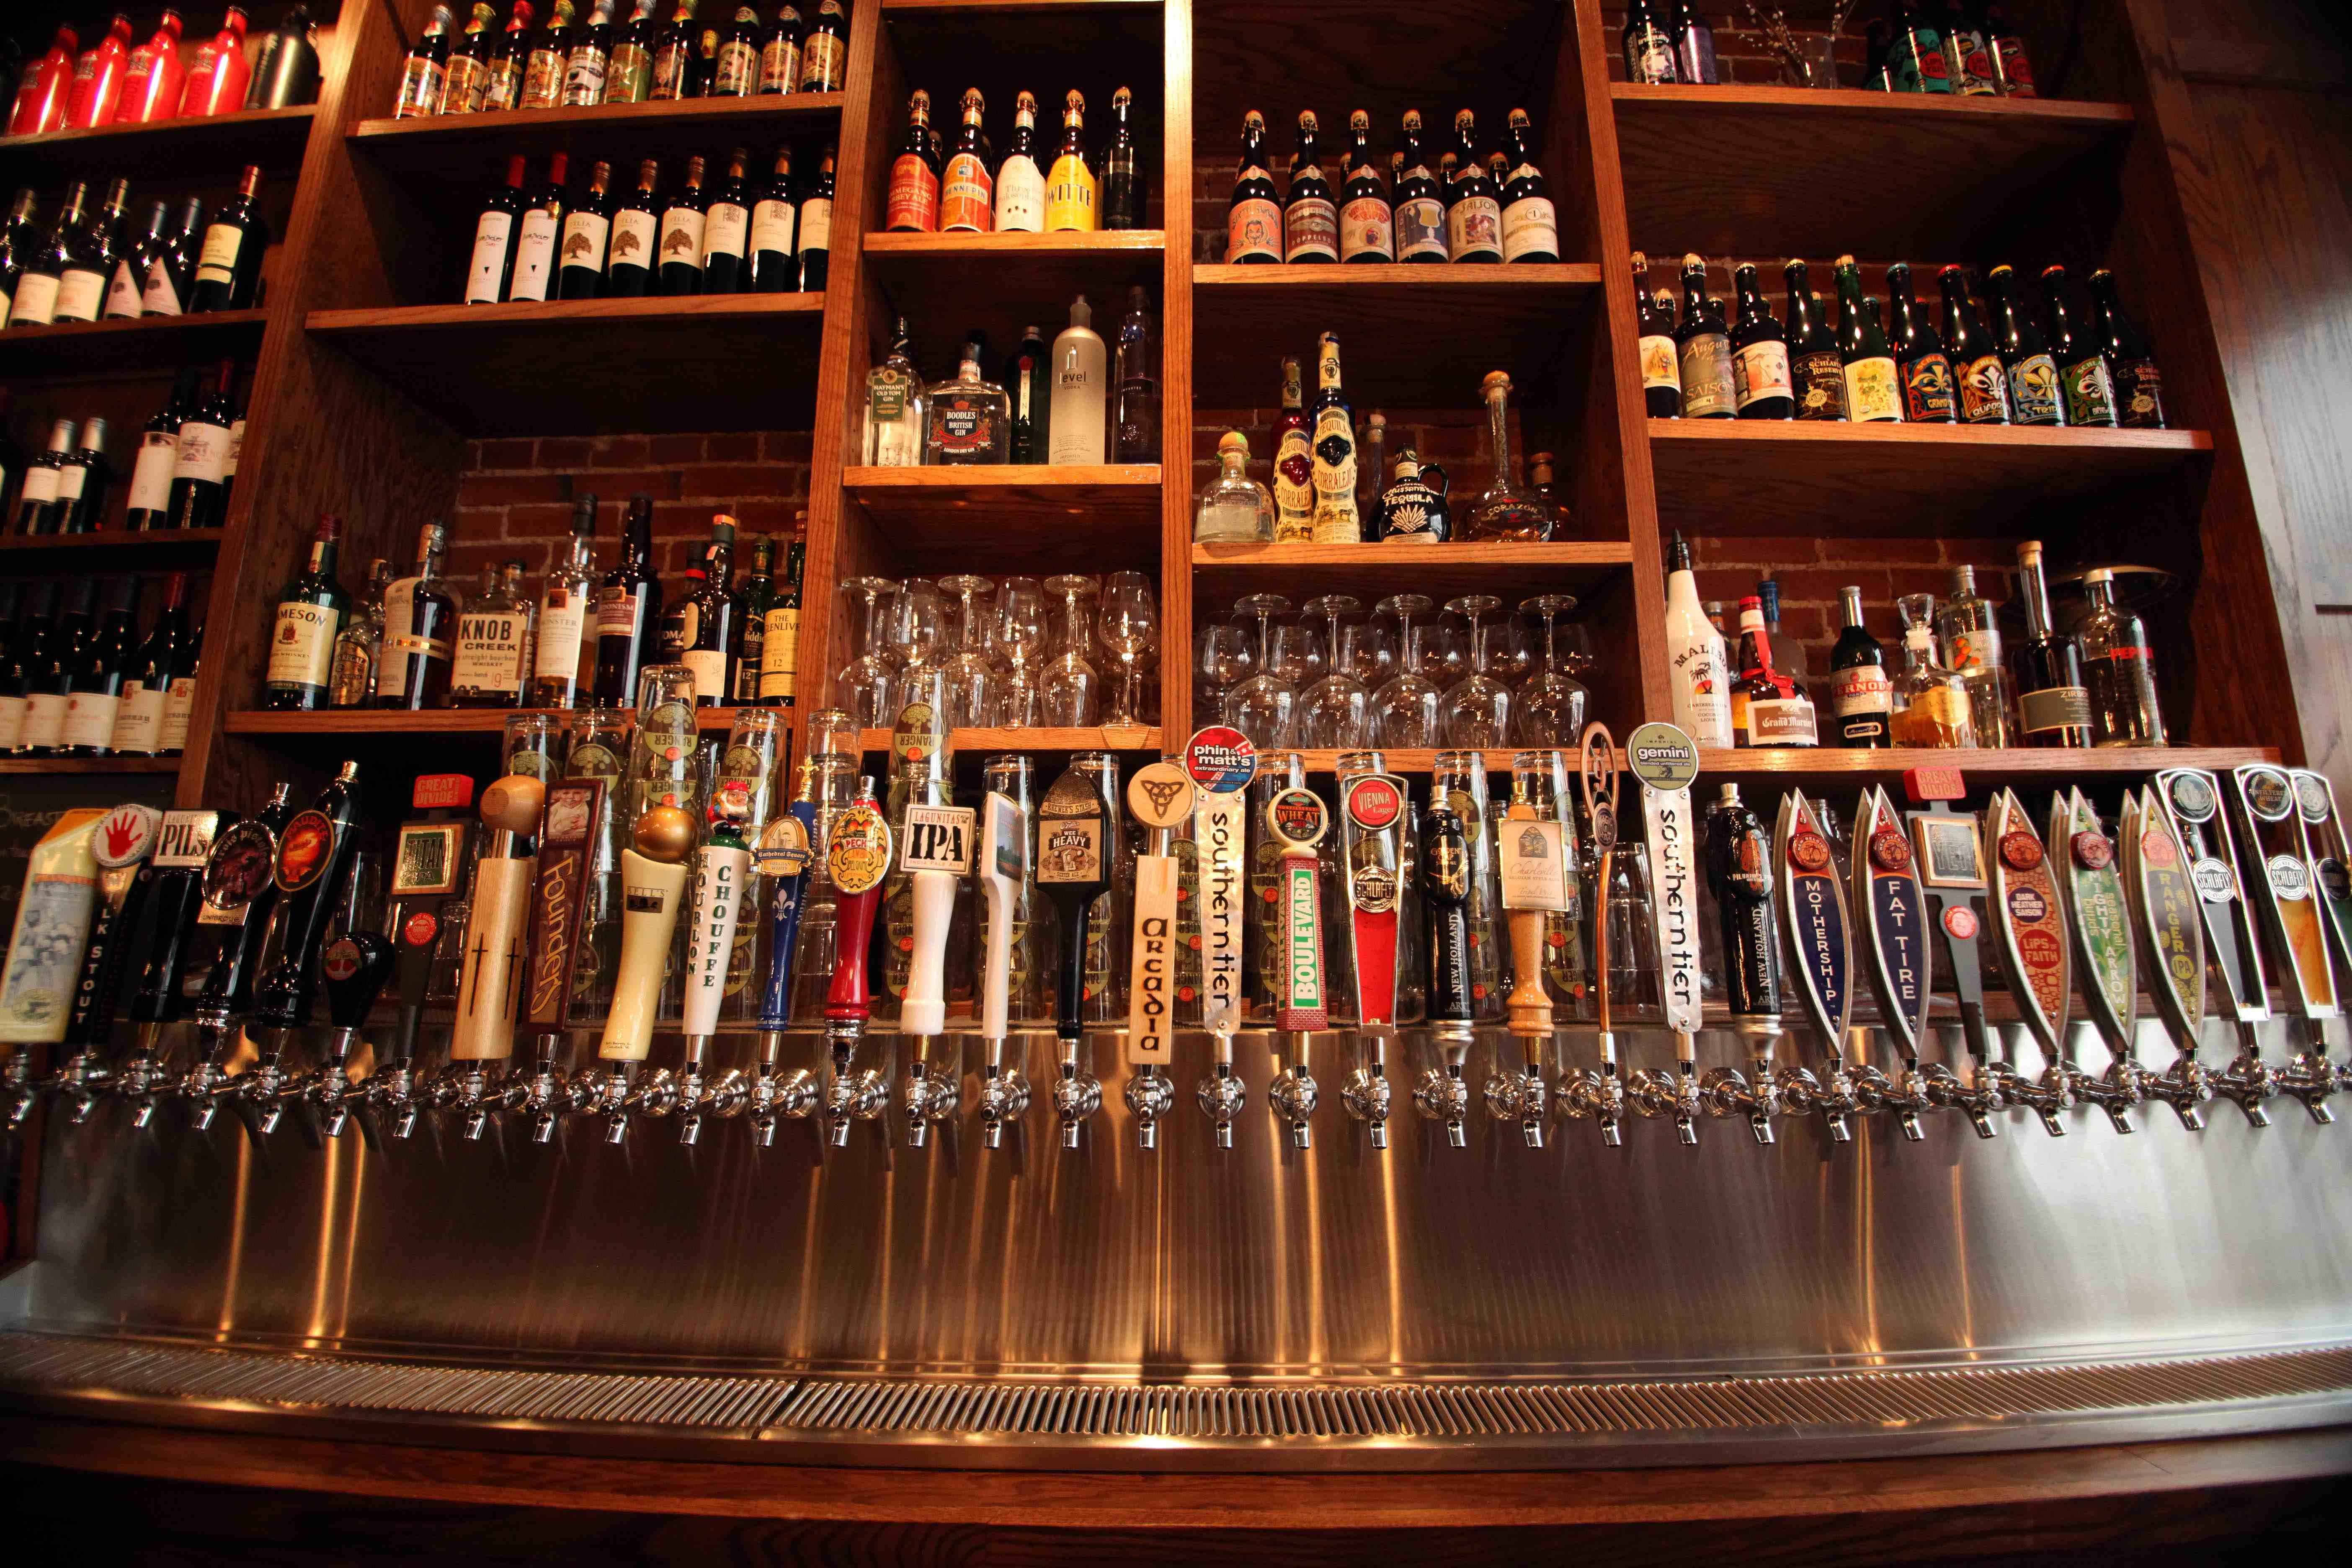 Where To Eat And Drink In St. Louis St. Louis Beer bar